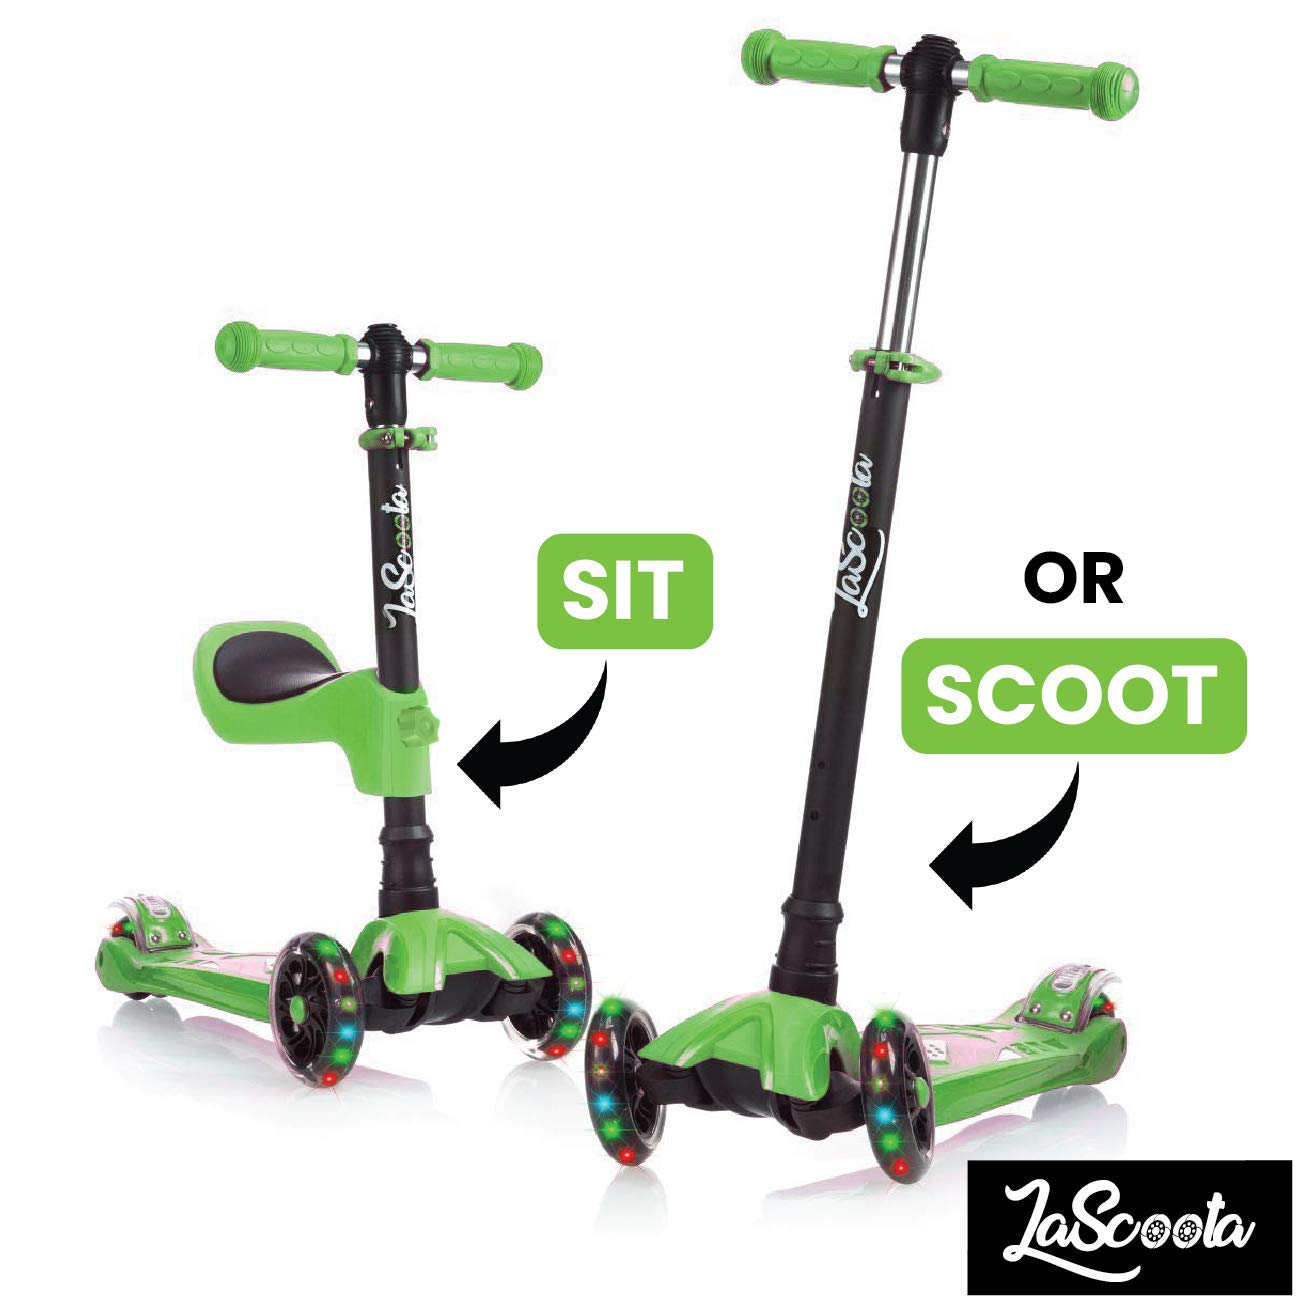 Lascoota 2-in-1 Kick Scooter with Removable Seat Great for Kids & Toddlers Girls or Boys - Adjustable Height w/Extra-Wide Deck PU Flashing Wheels for Children from 2 to 14 Year-Old (Green)